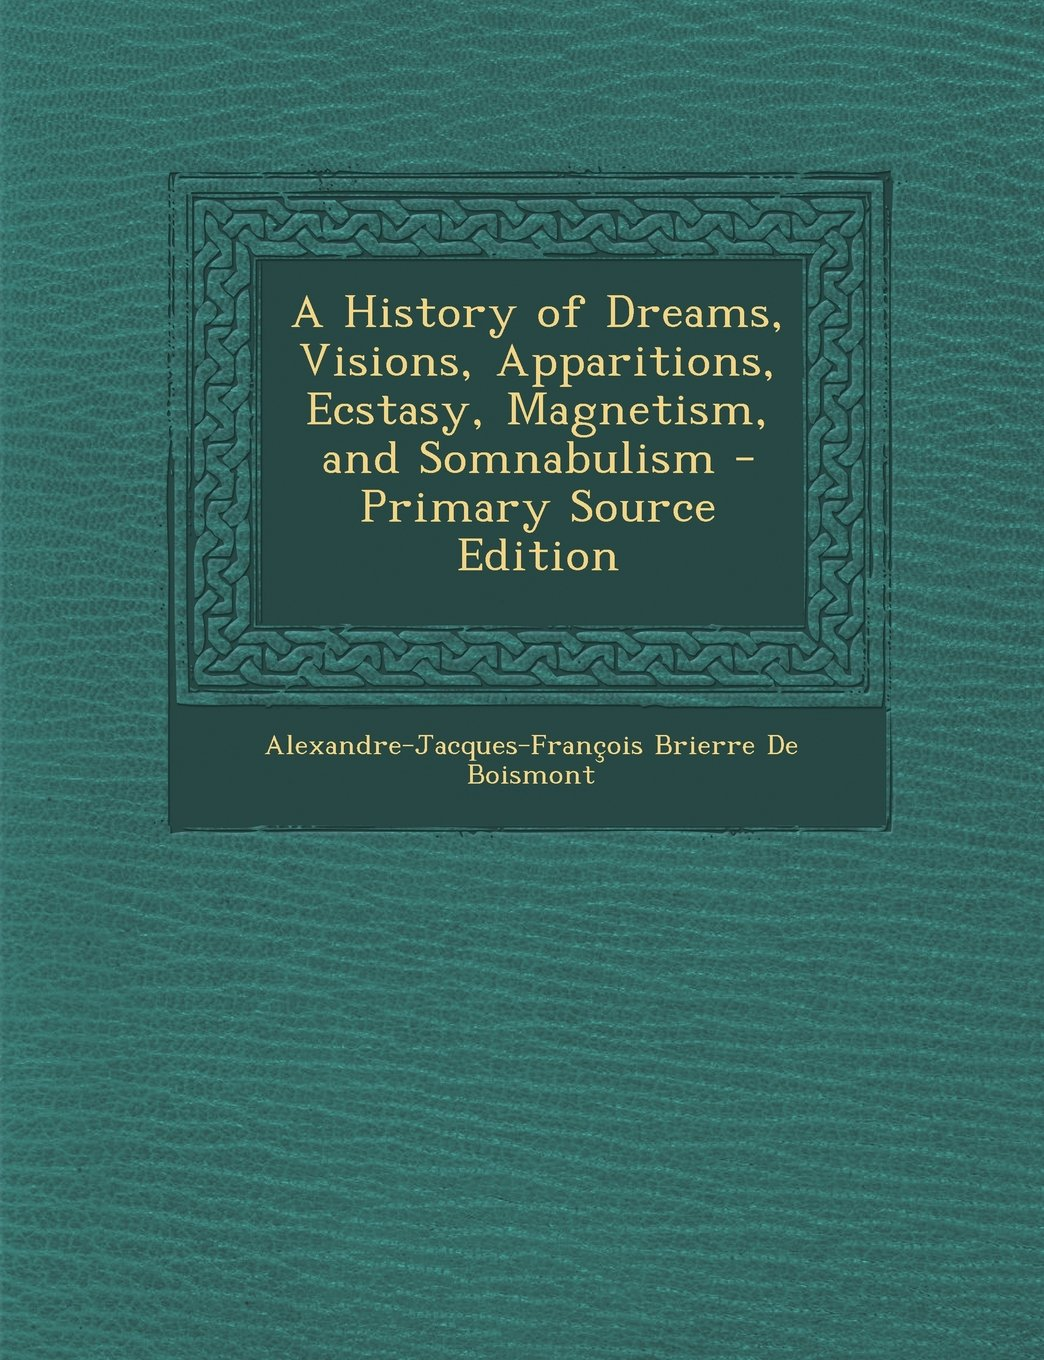 A History of Dreams, Visions, Apparitions, Ecstasy, Magnetism, and Somnabulism - Primary Source Edition pdf epub